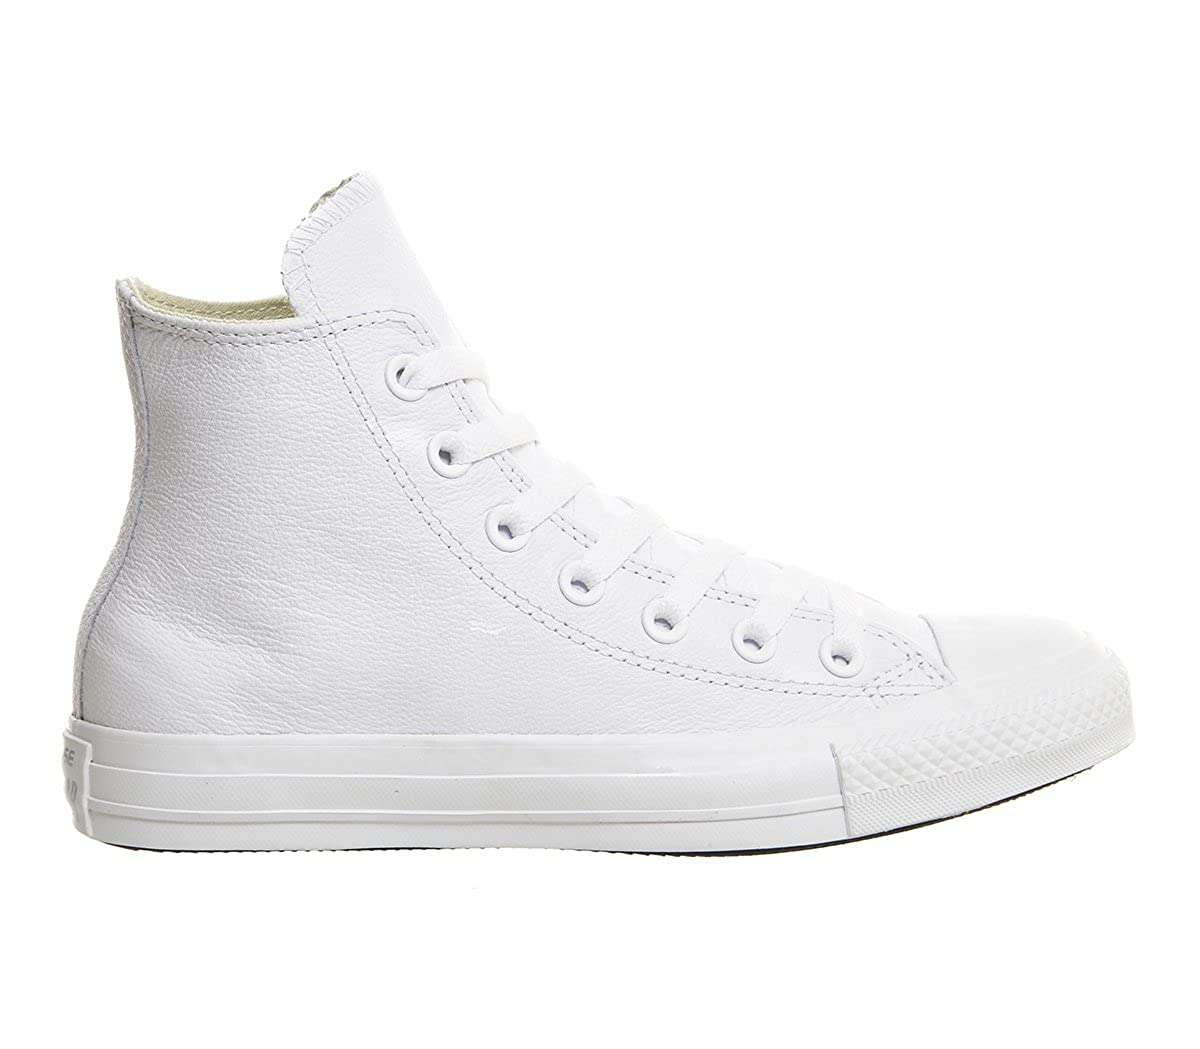 2converse leather white